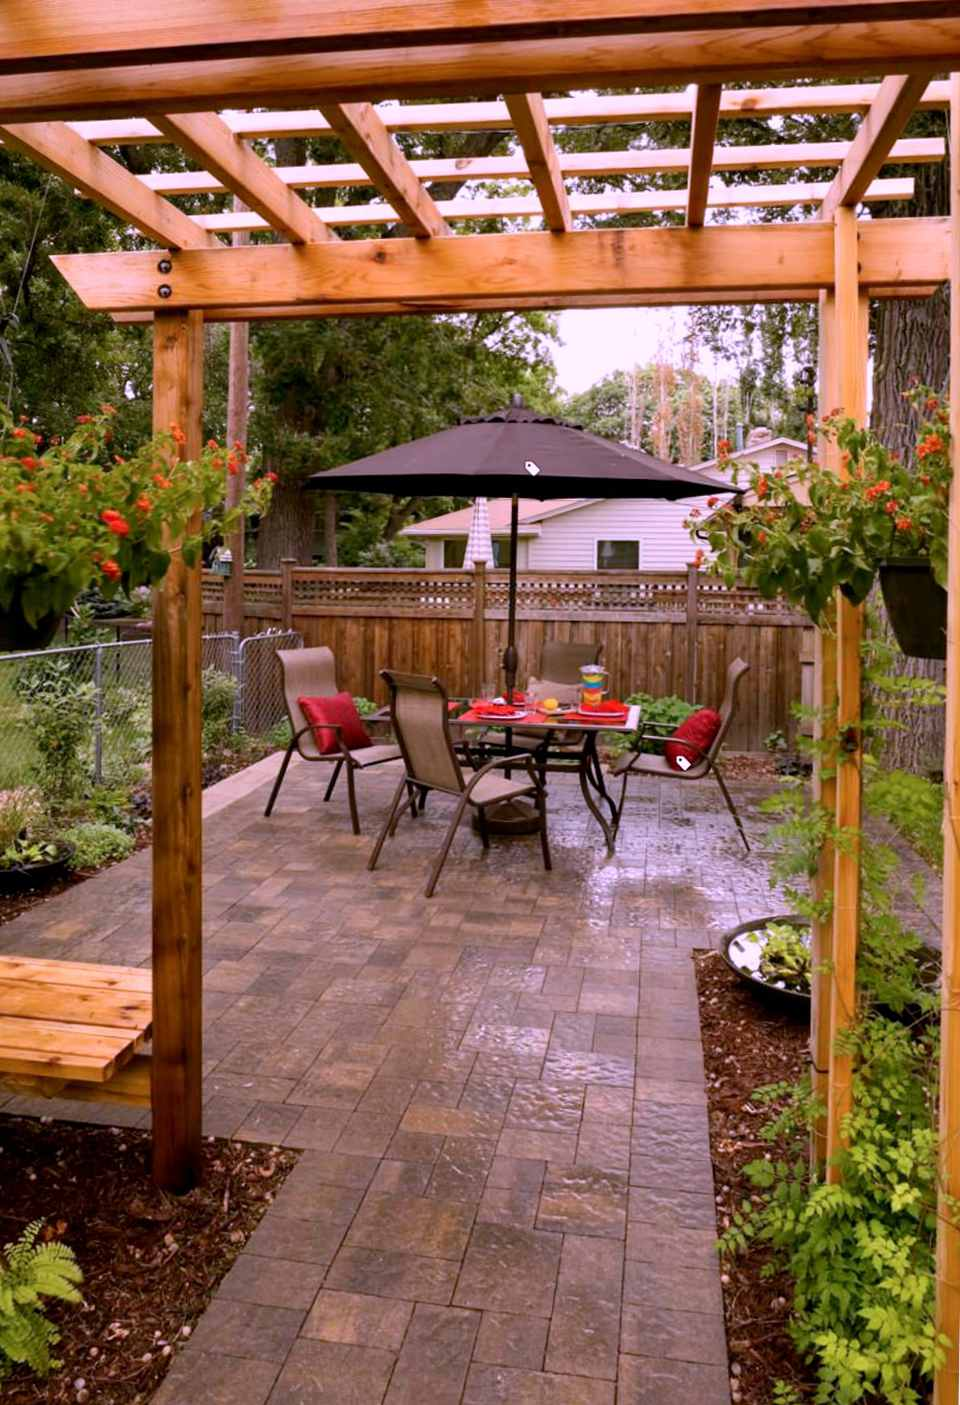 25 Perfect Patio Paver Design Ideas on Small Backyard Brick Patio Ideas  id=61292